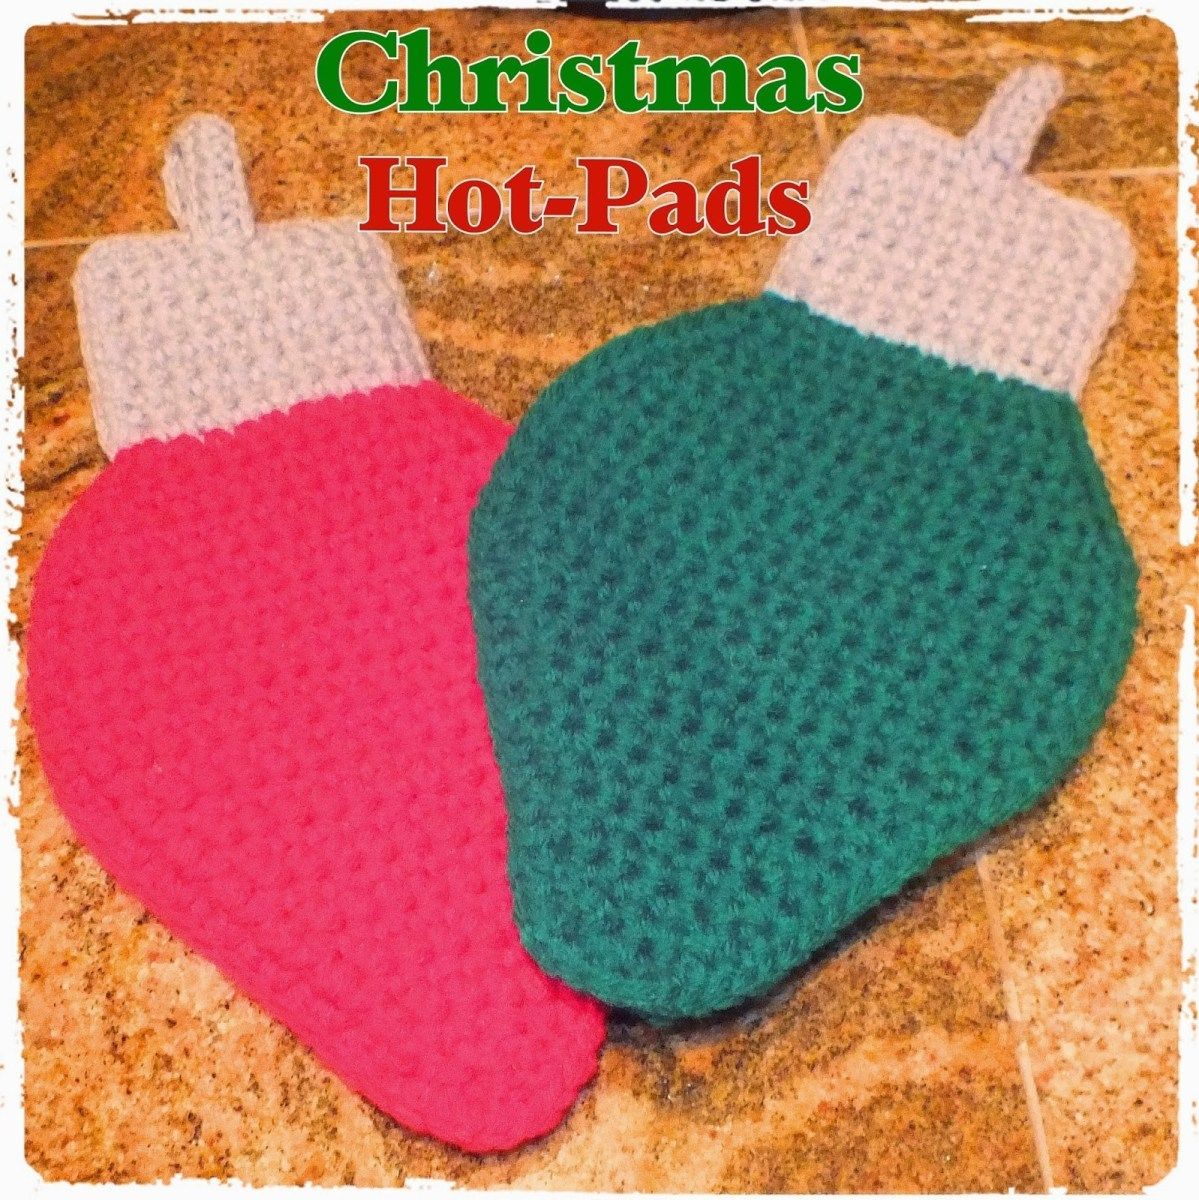 Crochet Potholder Patterns 59 Free Crochet Potholder Patterns Guide Patterns #crochetpotholderpatterns